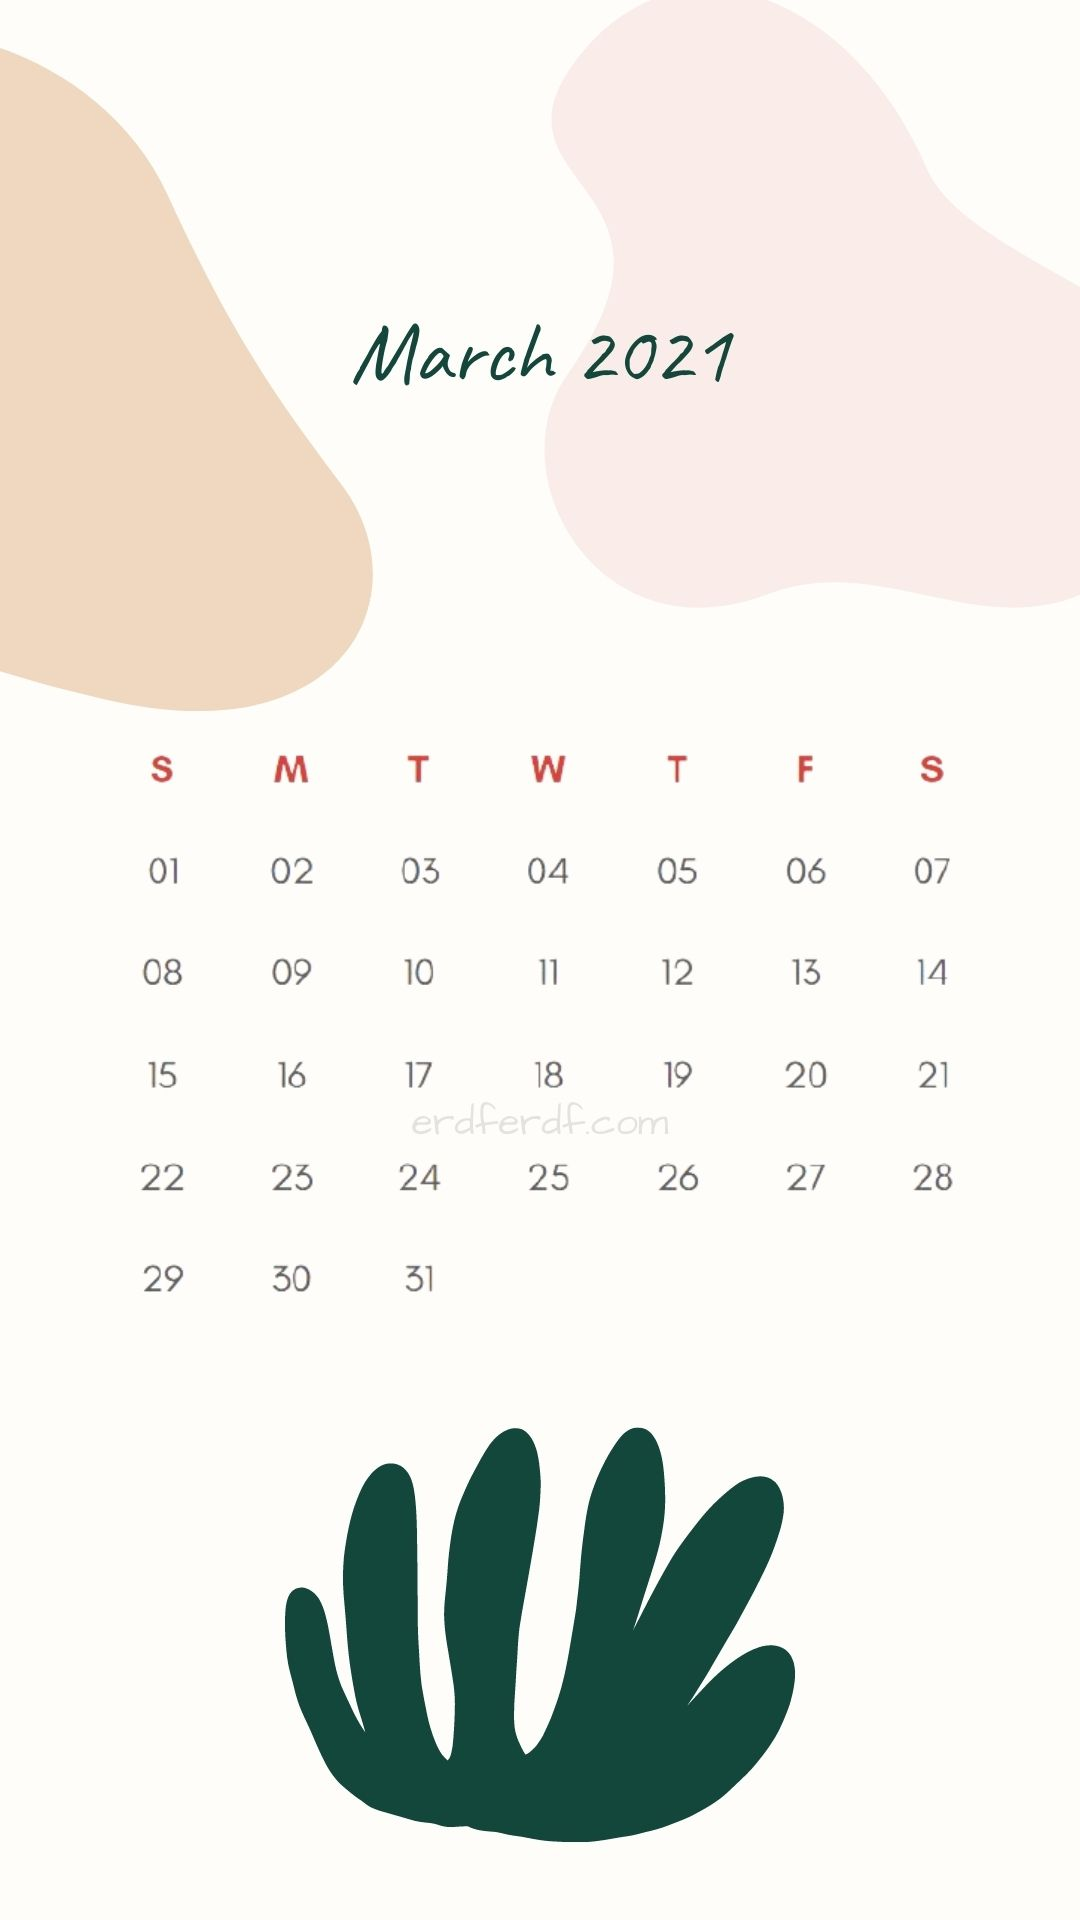 Iphone Wallpaper March 2021 Calendar Free